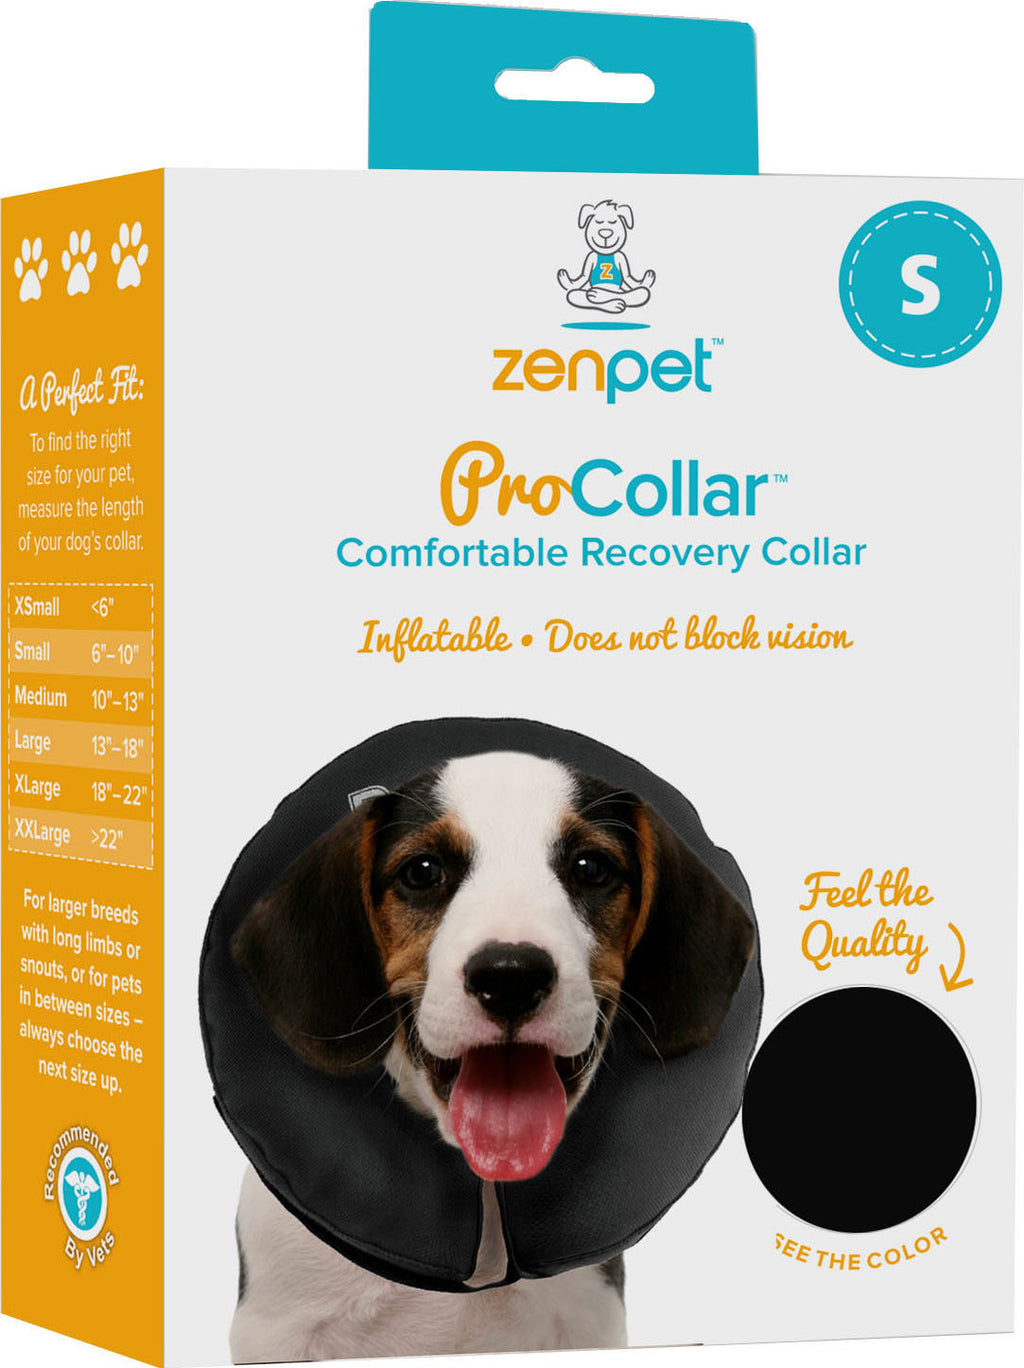 Procollar Inflatable Recovery Collar